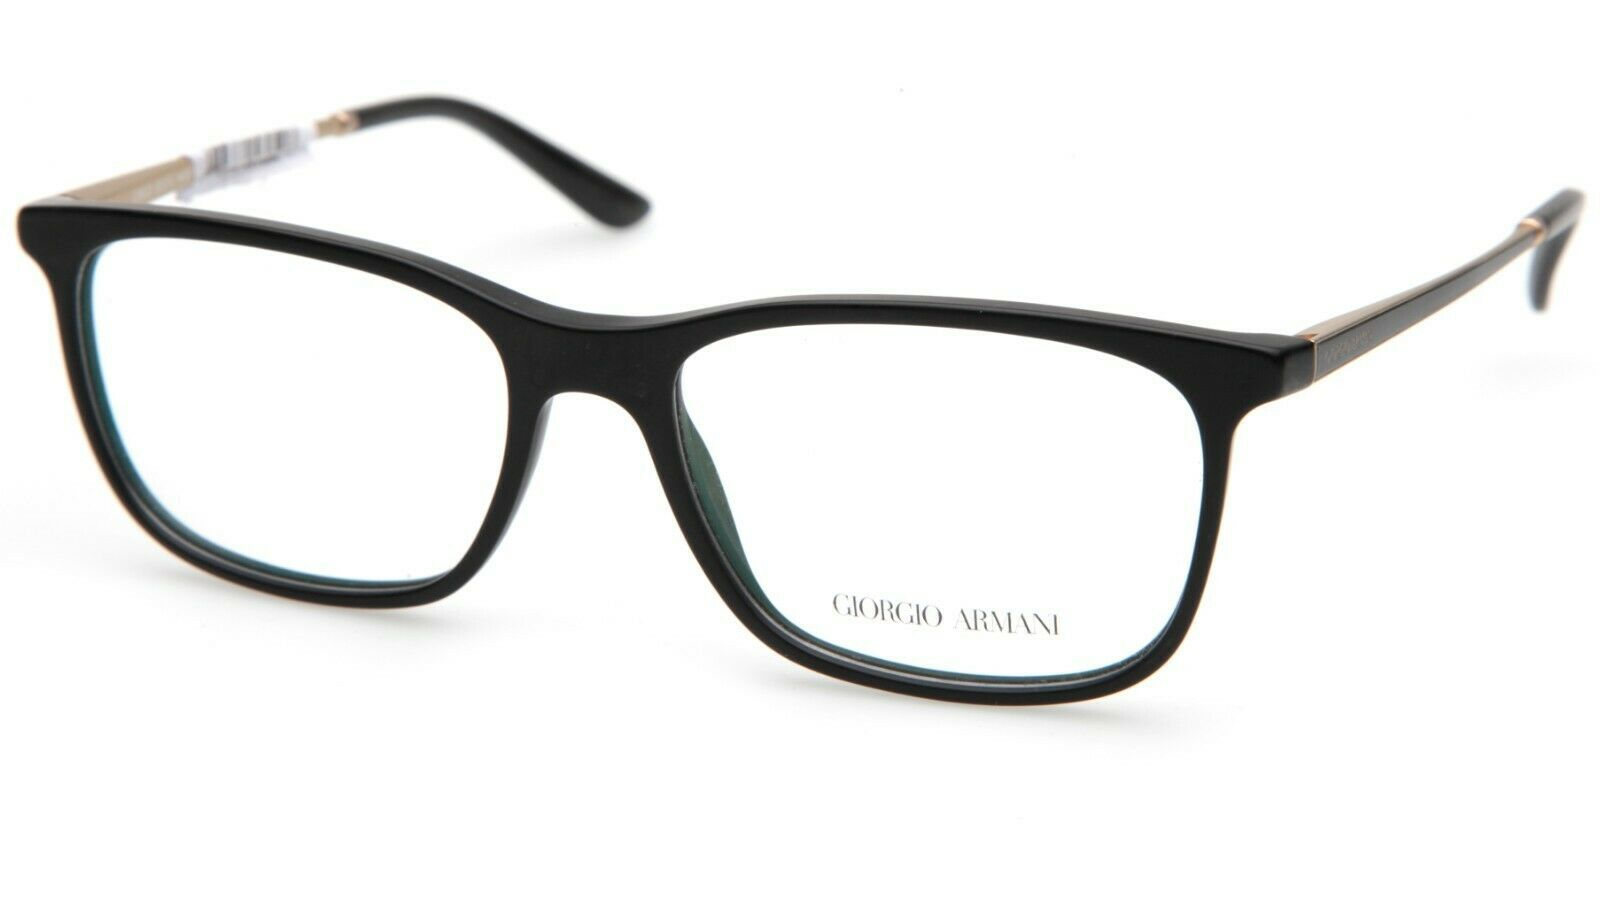 Primary image for New GIORGIO ARMANI AR7112 5052 BLACK EYEGLASSES FRAME 55-17-140mm B38mm Italy